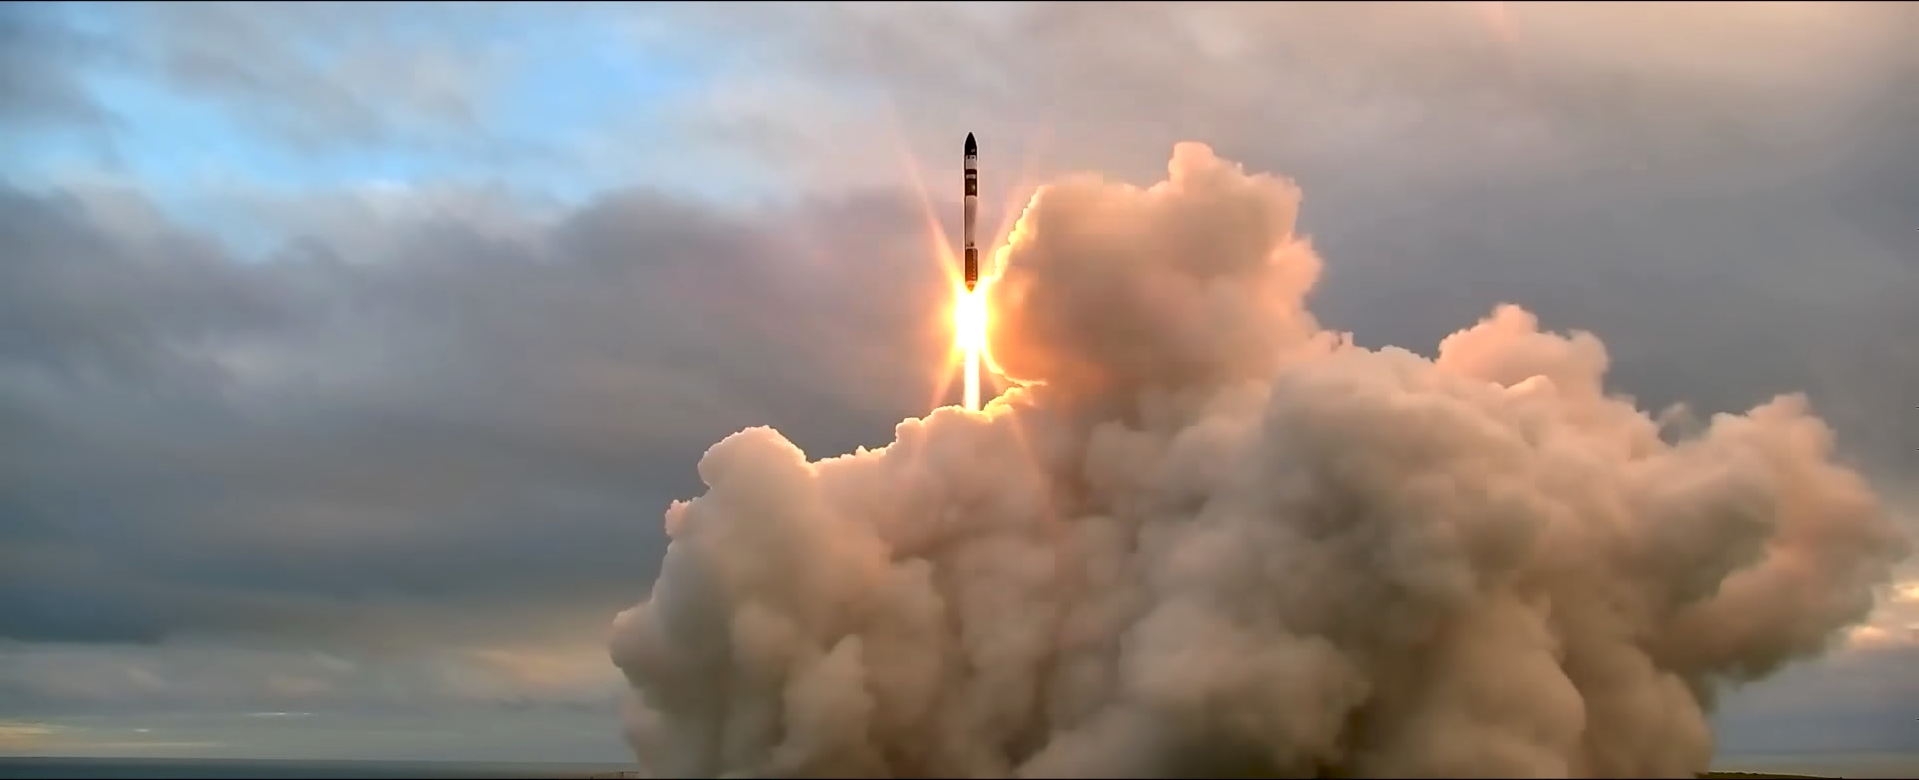 Rocket Lab's second test launch will deliver a payload to orbit | DeviceDaily.com